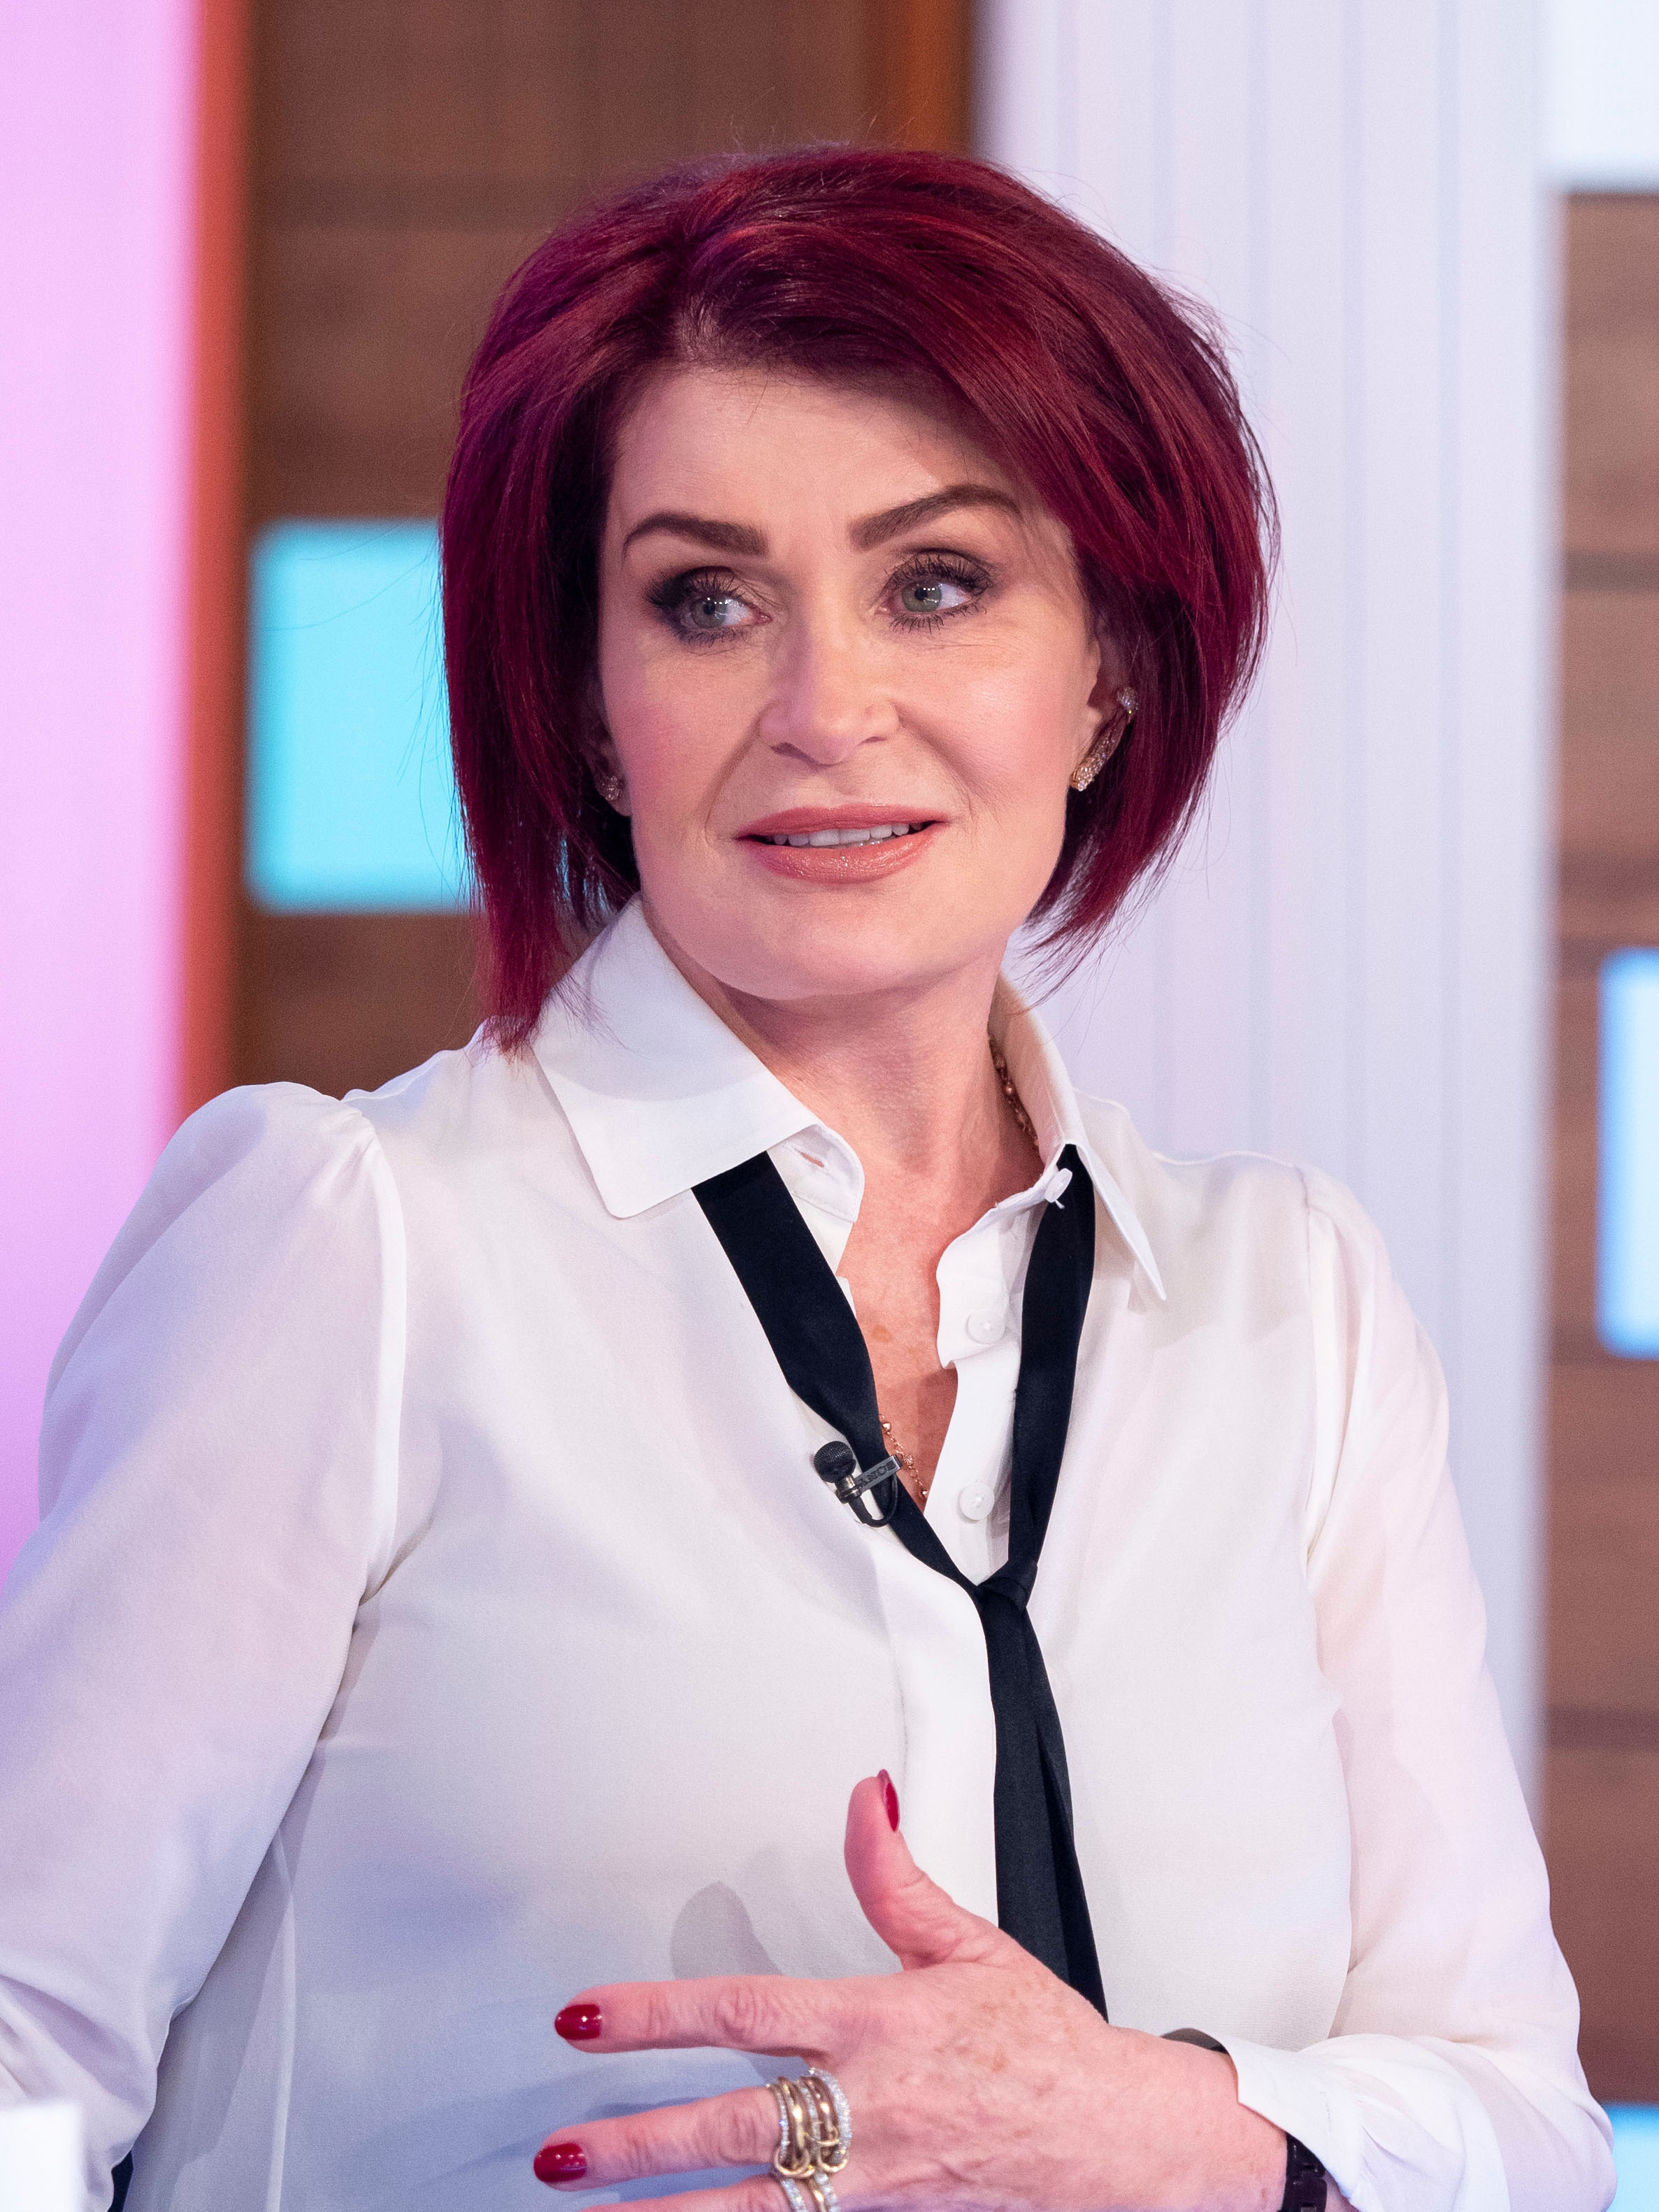 Sharon Osbourne blasts Brooklyn Beckham on Loose Women: 'What does he do for a living?'